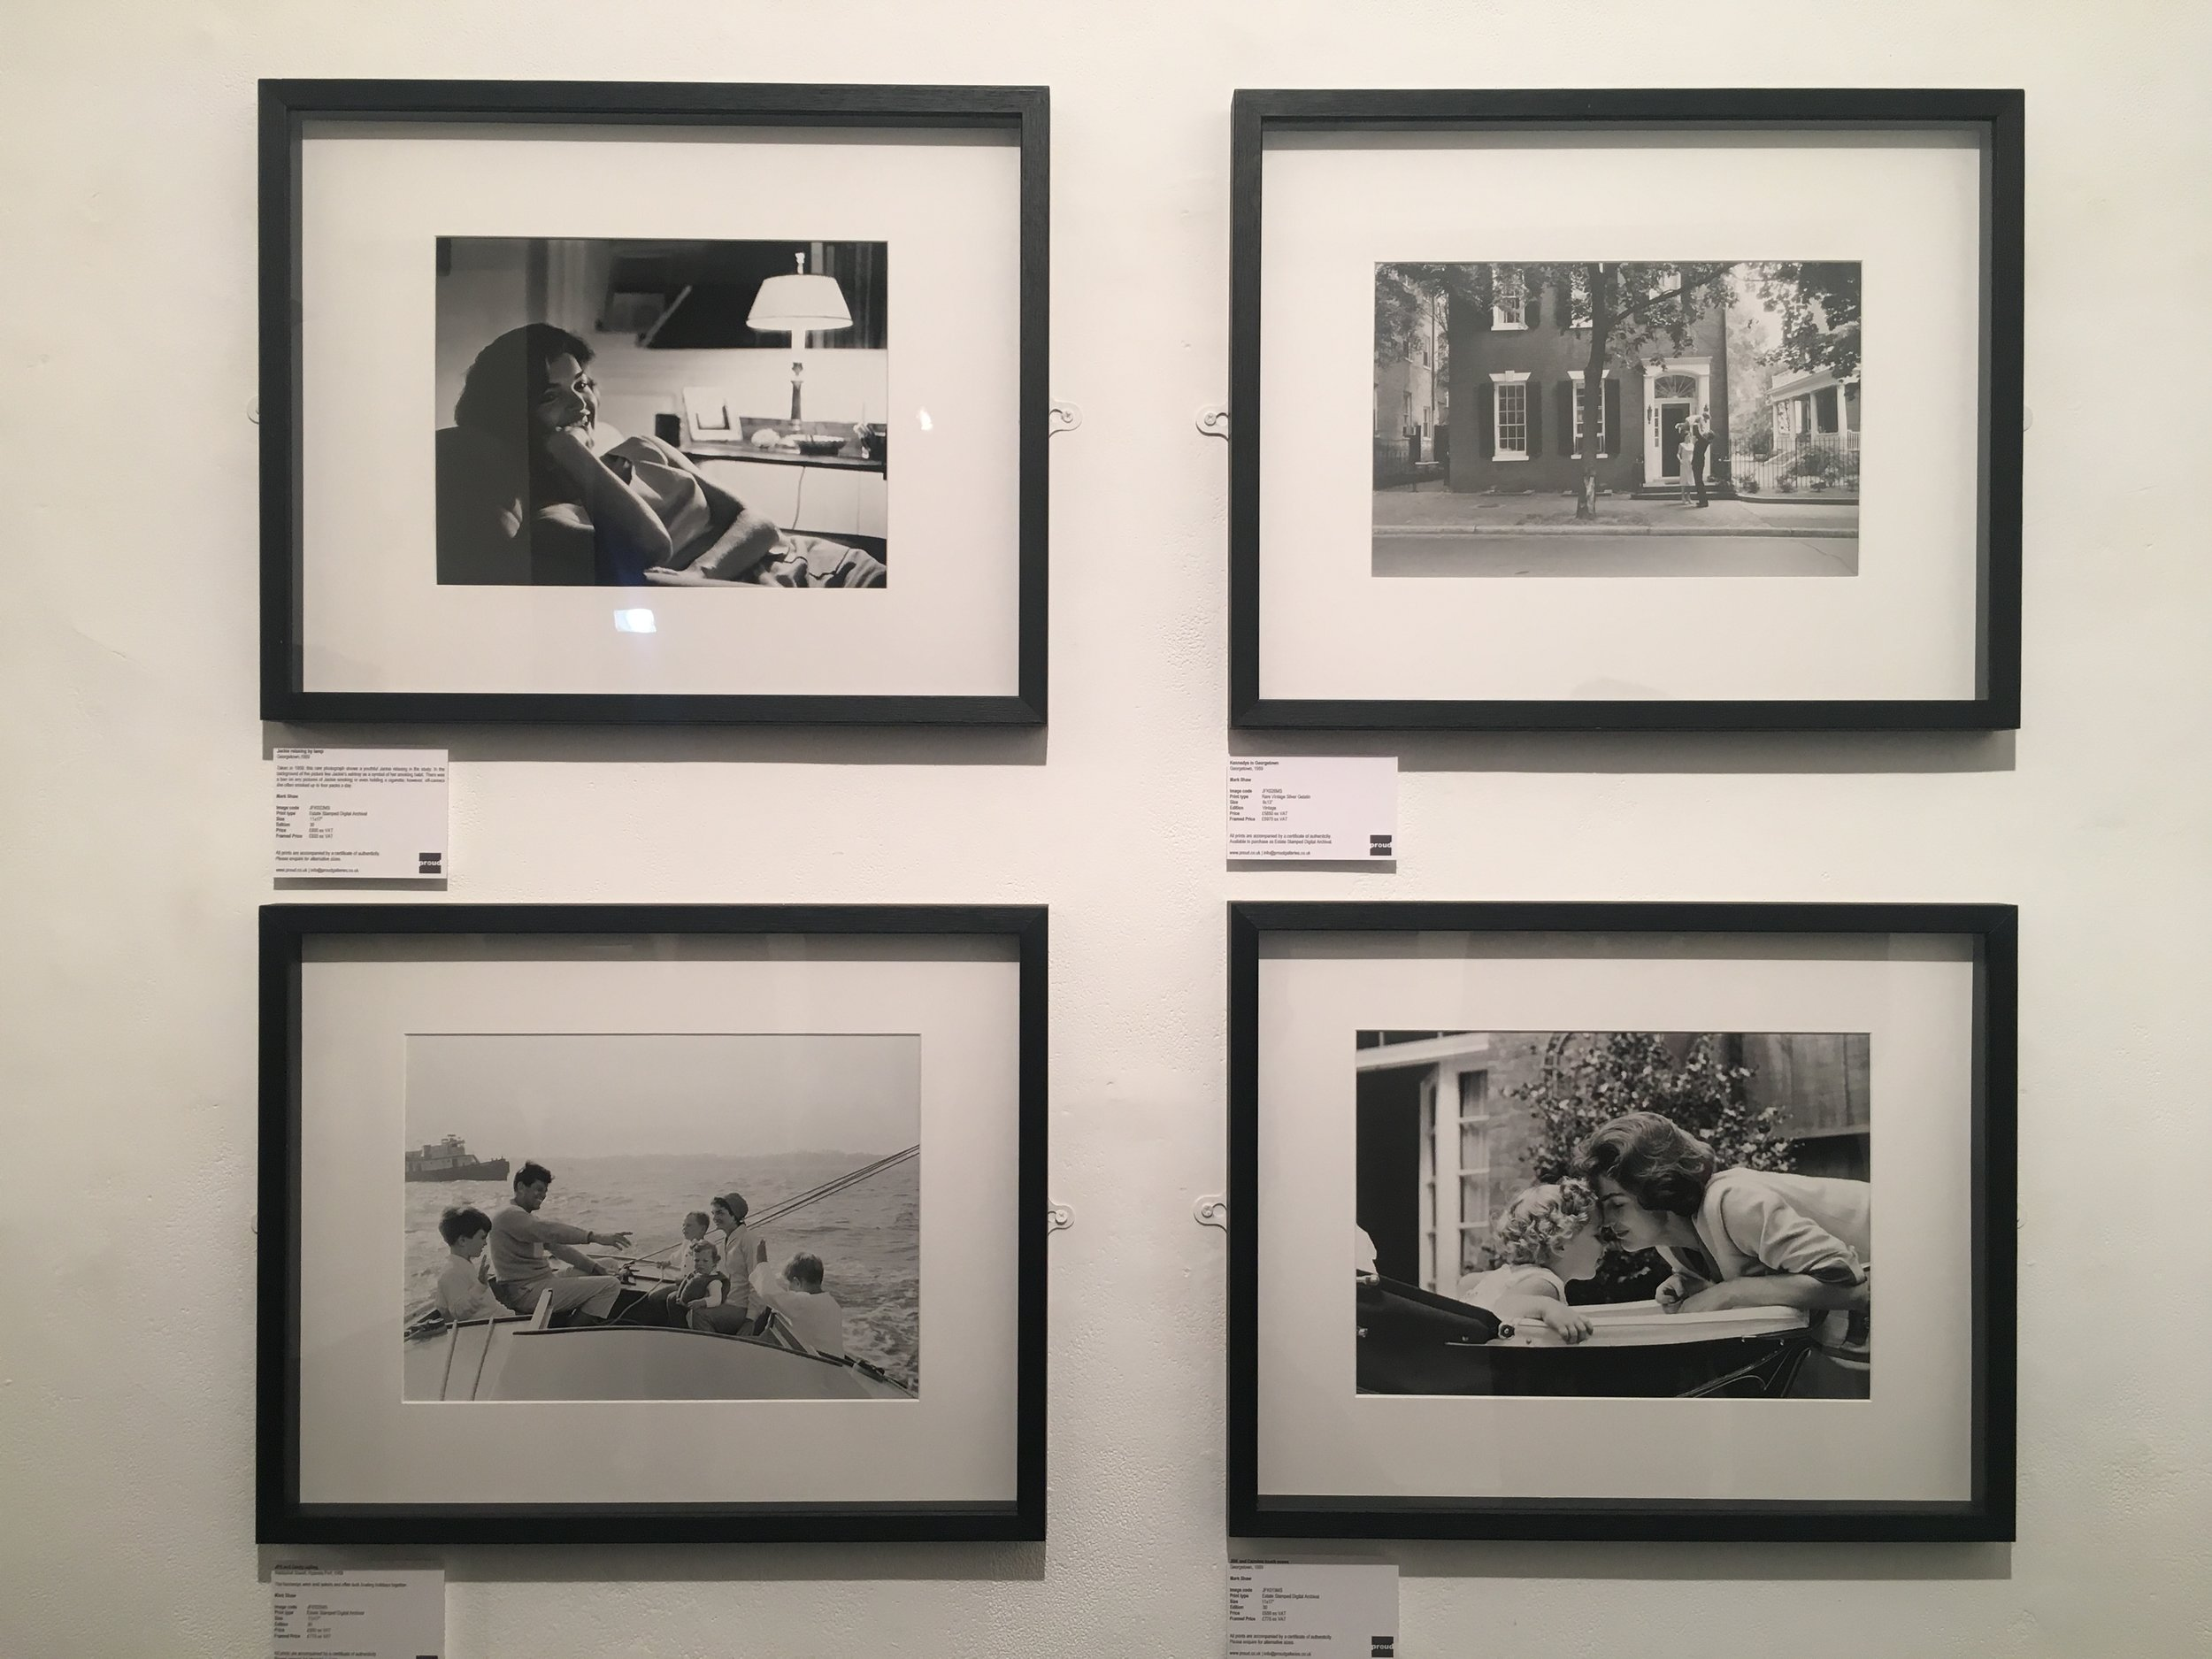 Life with The Kennedys, Proud Gallery, Central London